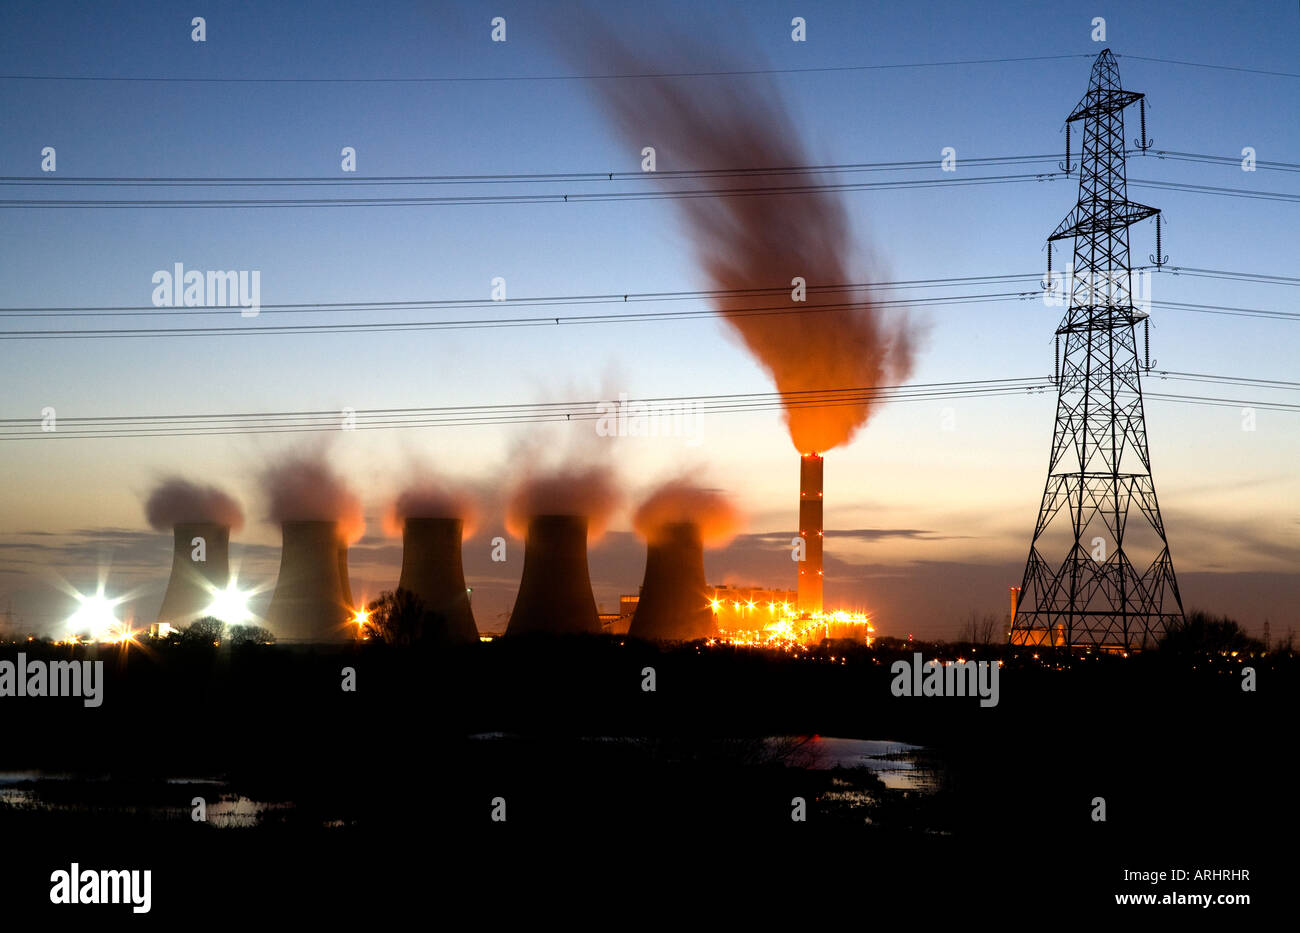 Cottam Power Station at Night on River Trent England - Stock Image